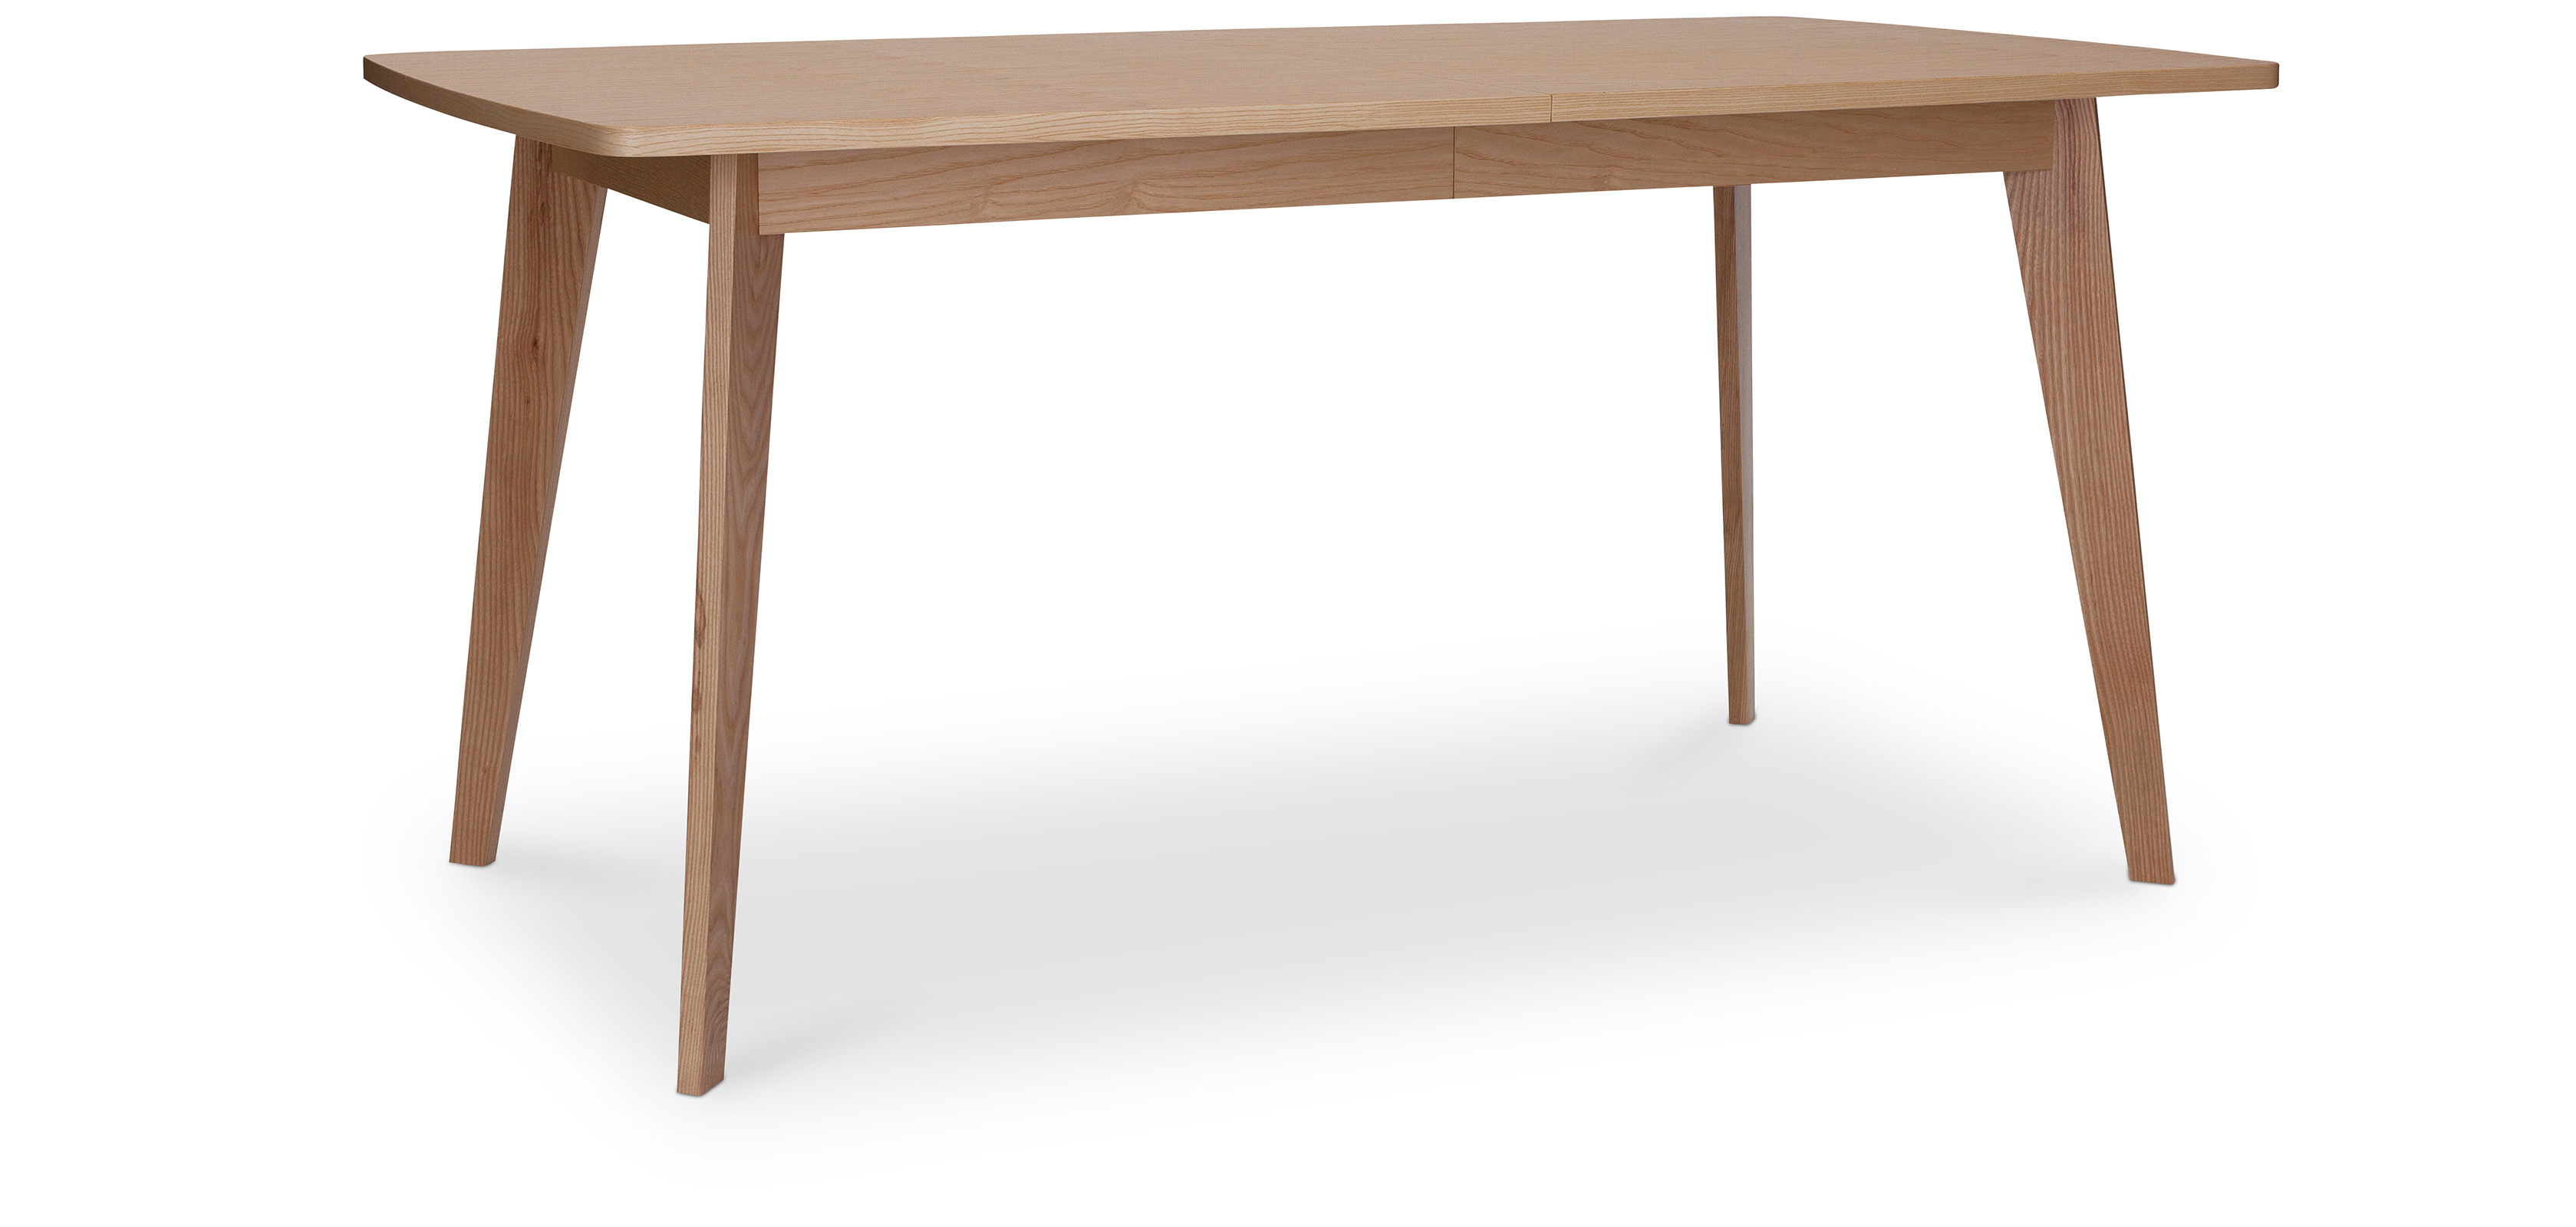 Table salle a manger scandinave valdiz for Tables de salle a manger